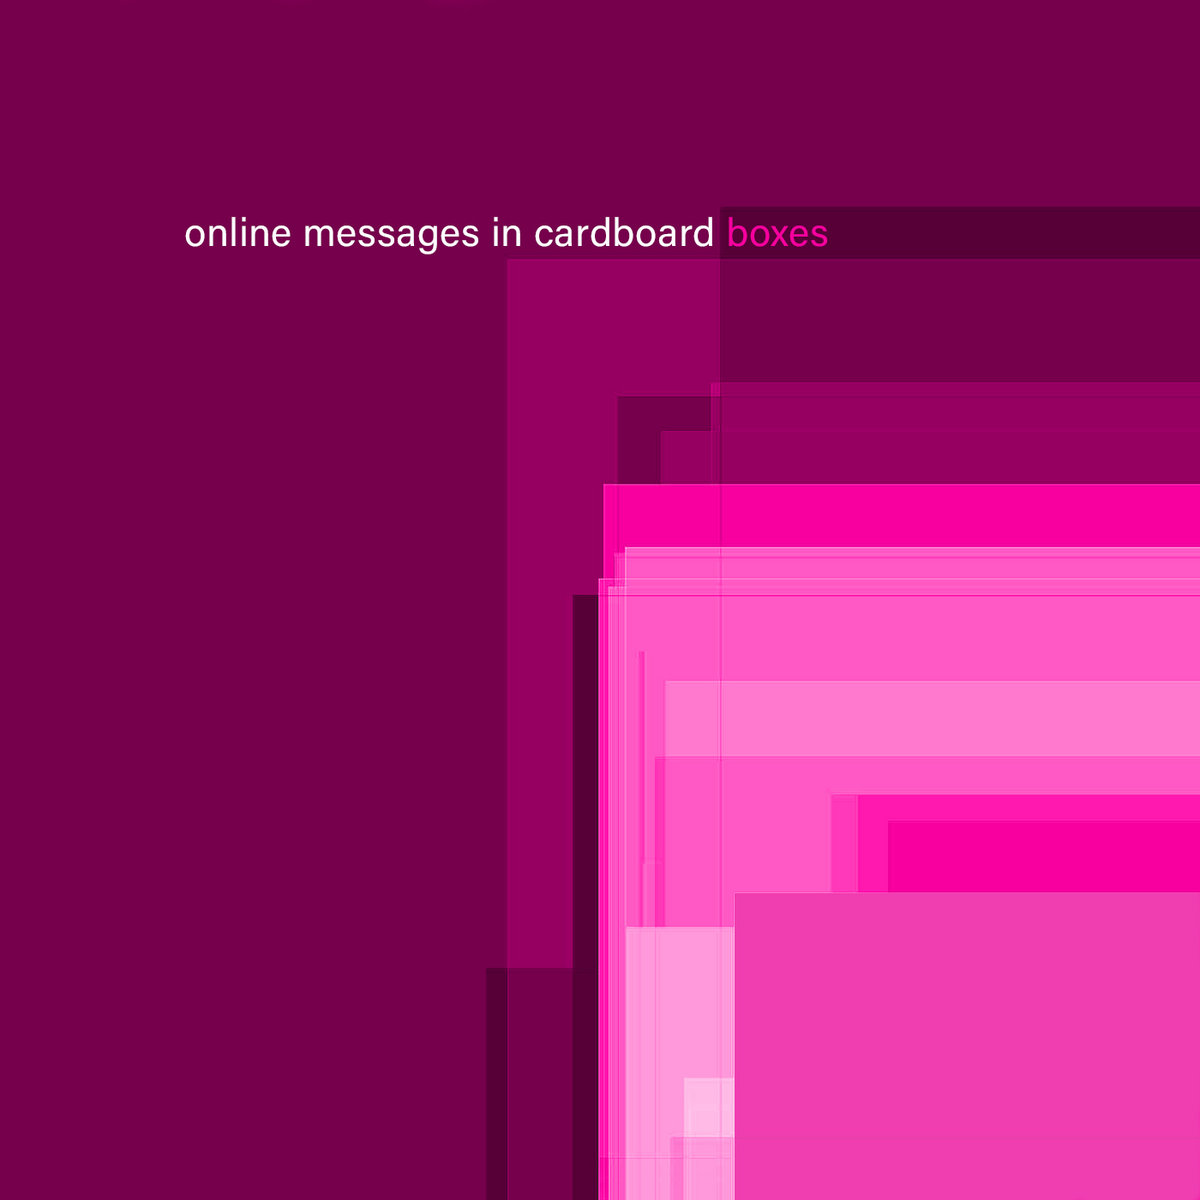 Mathieu St-Pierre – Online Messages in Cardboard Boxes